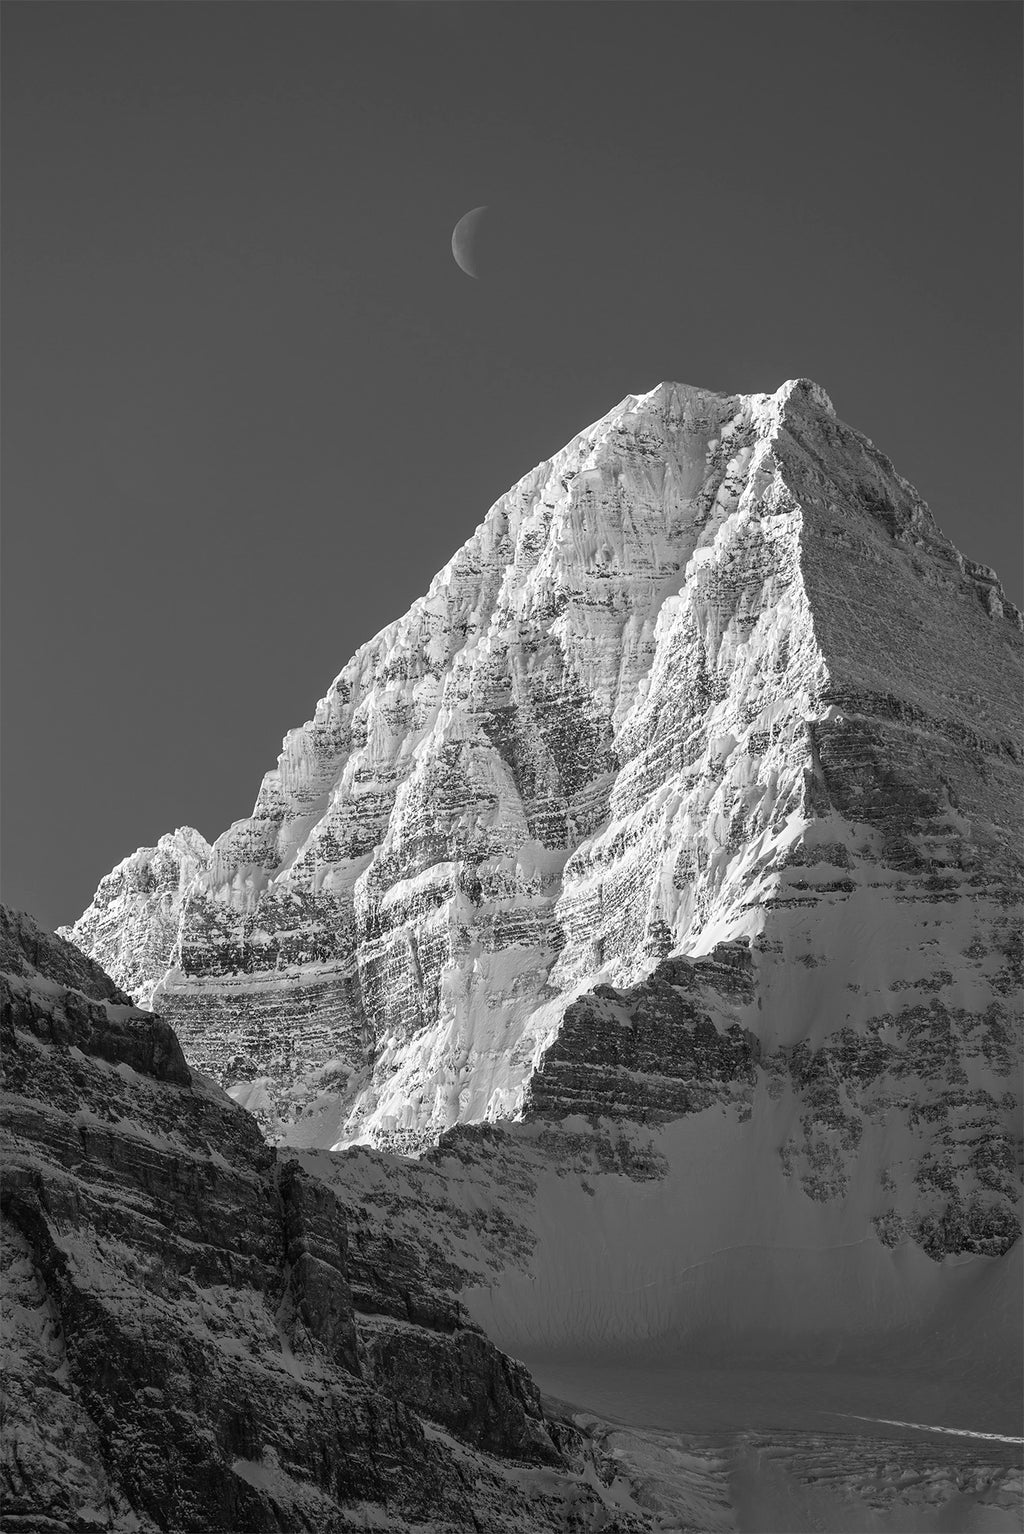 Assiniboine and Waning Moon 24x36 inch Canvas Print